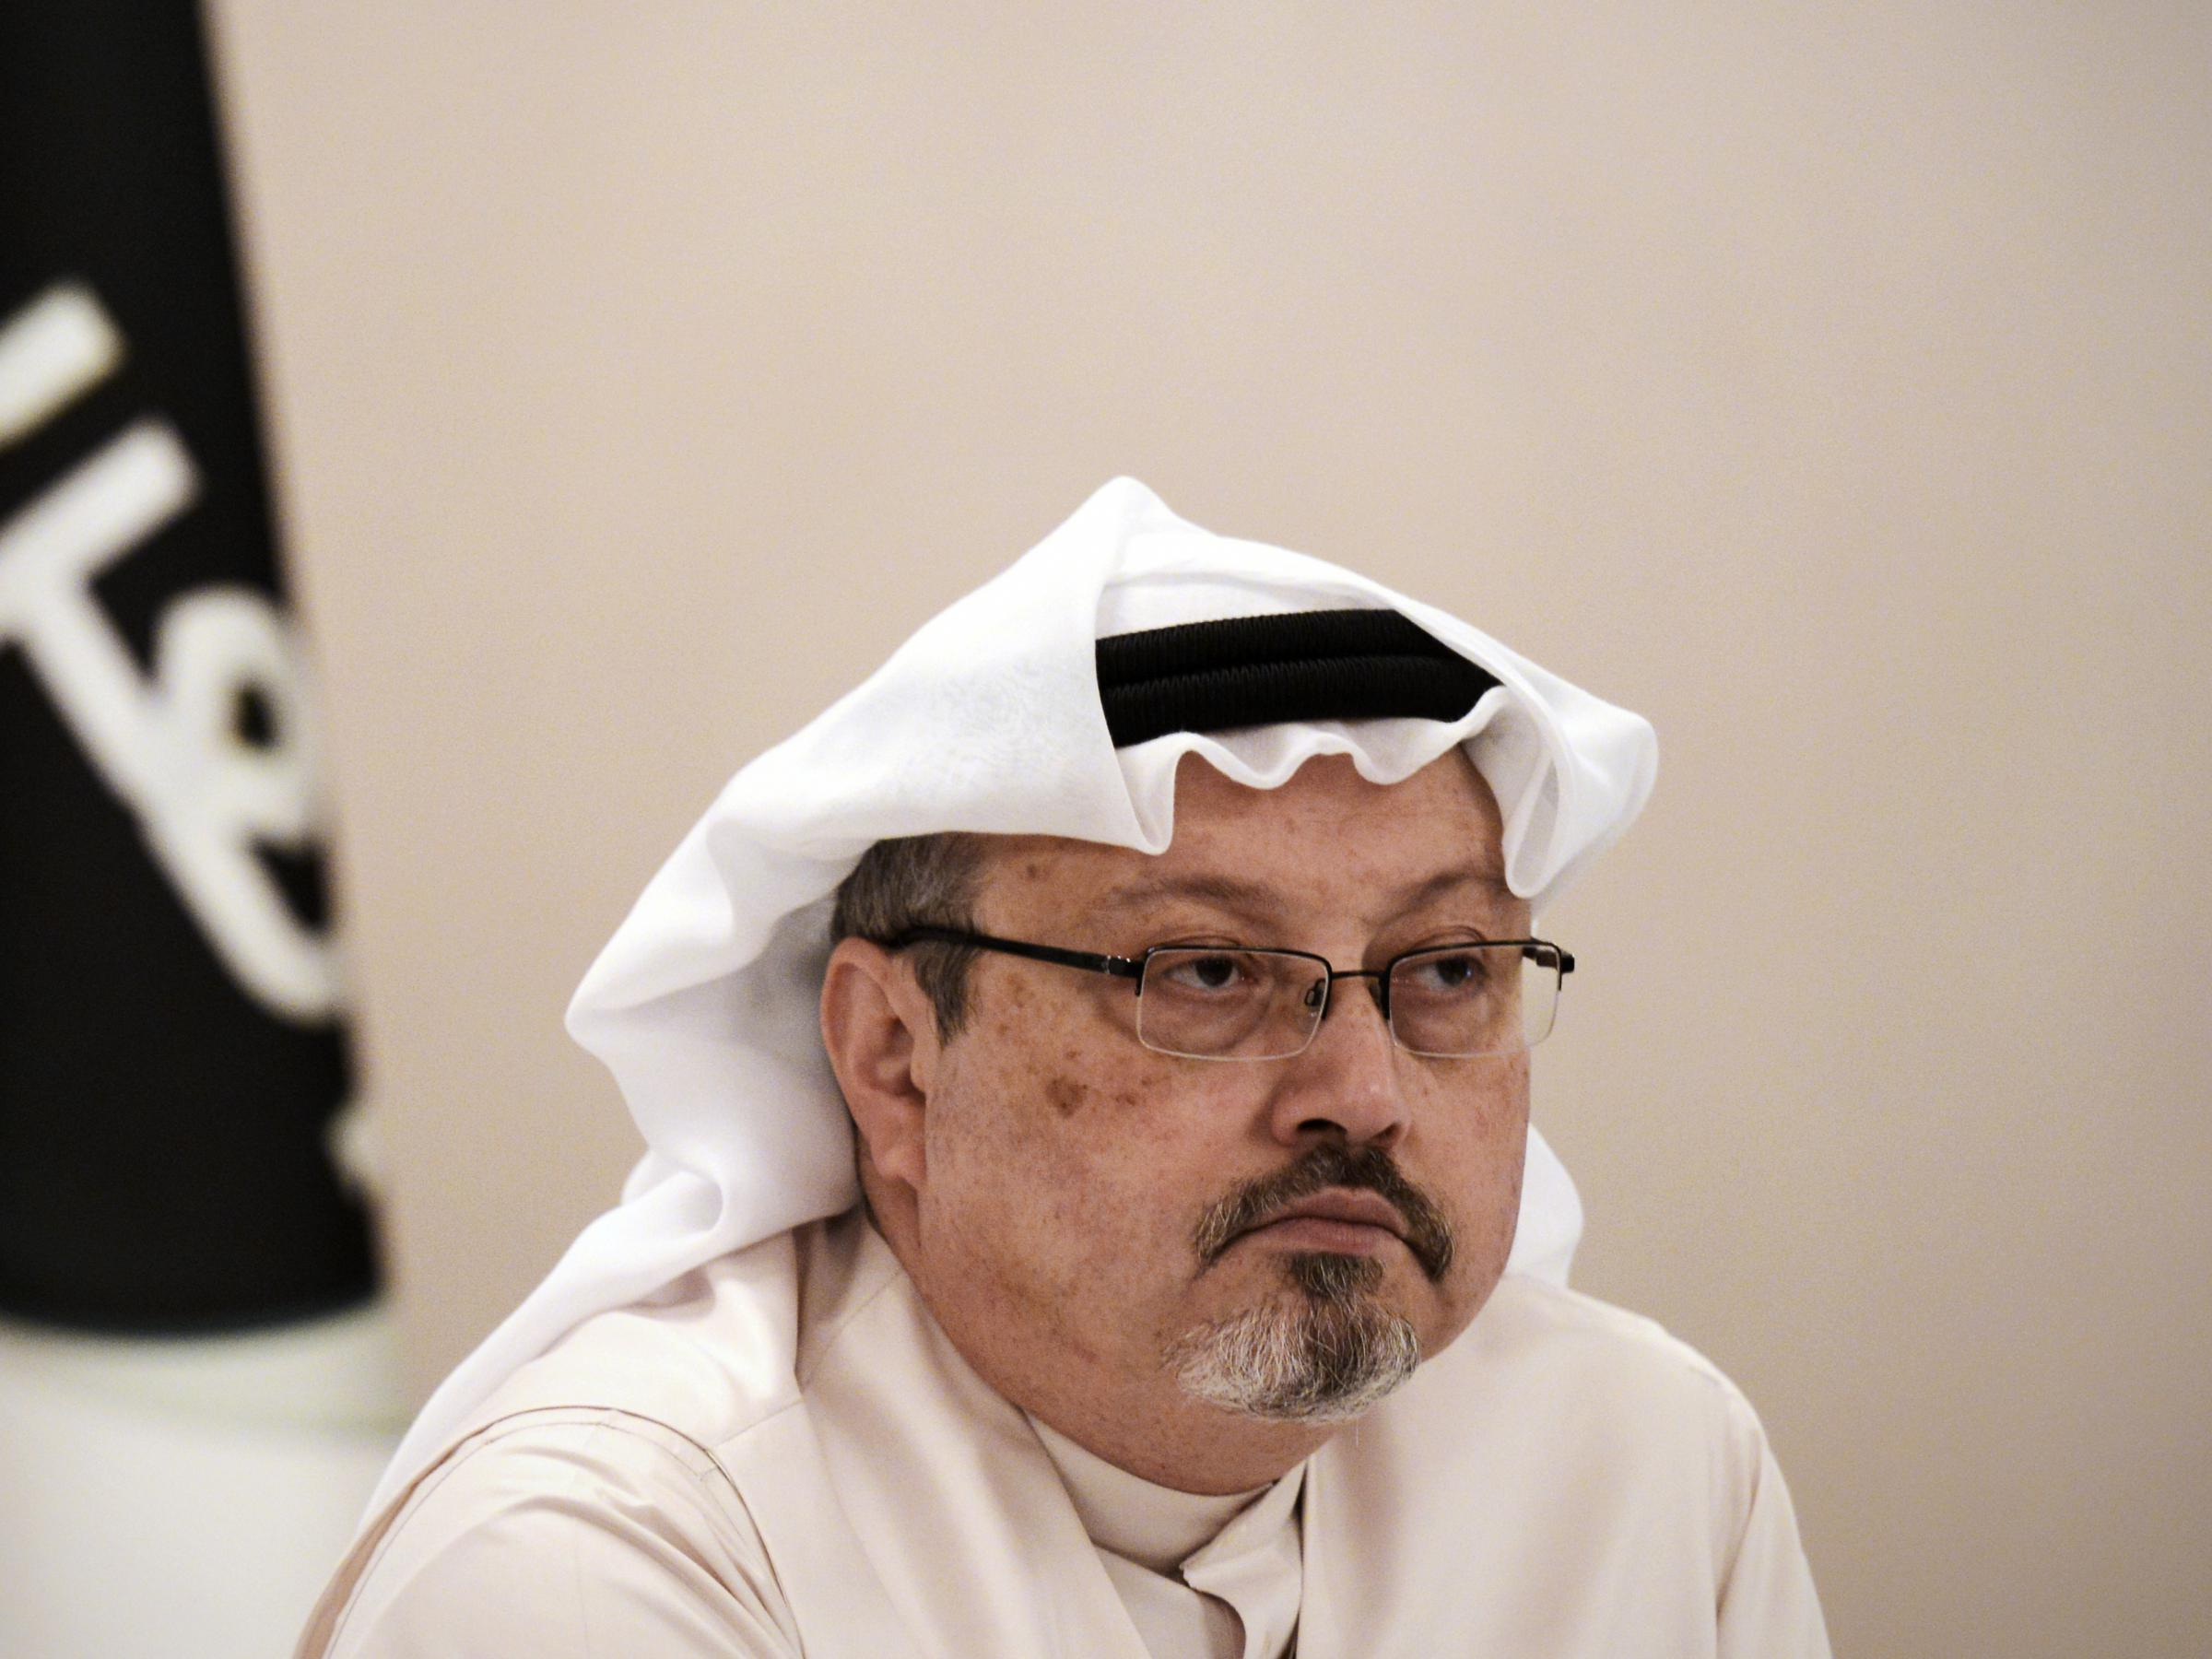 Saudi journalist Jamal Khashoggi was last seen visiting Saudi Arabia's consulate in Istanbul on Oct. 2